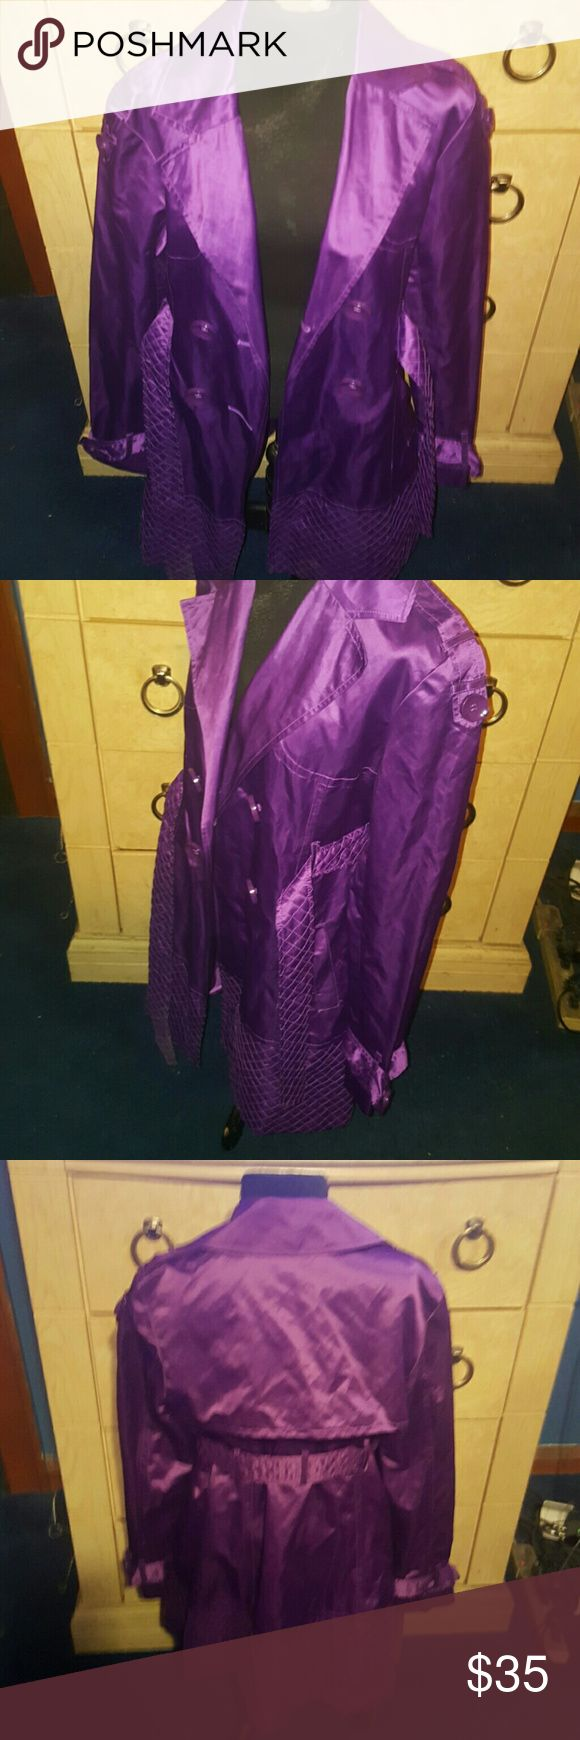 Purple trench Belted jacket buttons good condition!!! Jackets & Coats Trench Coats